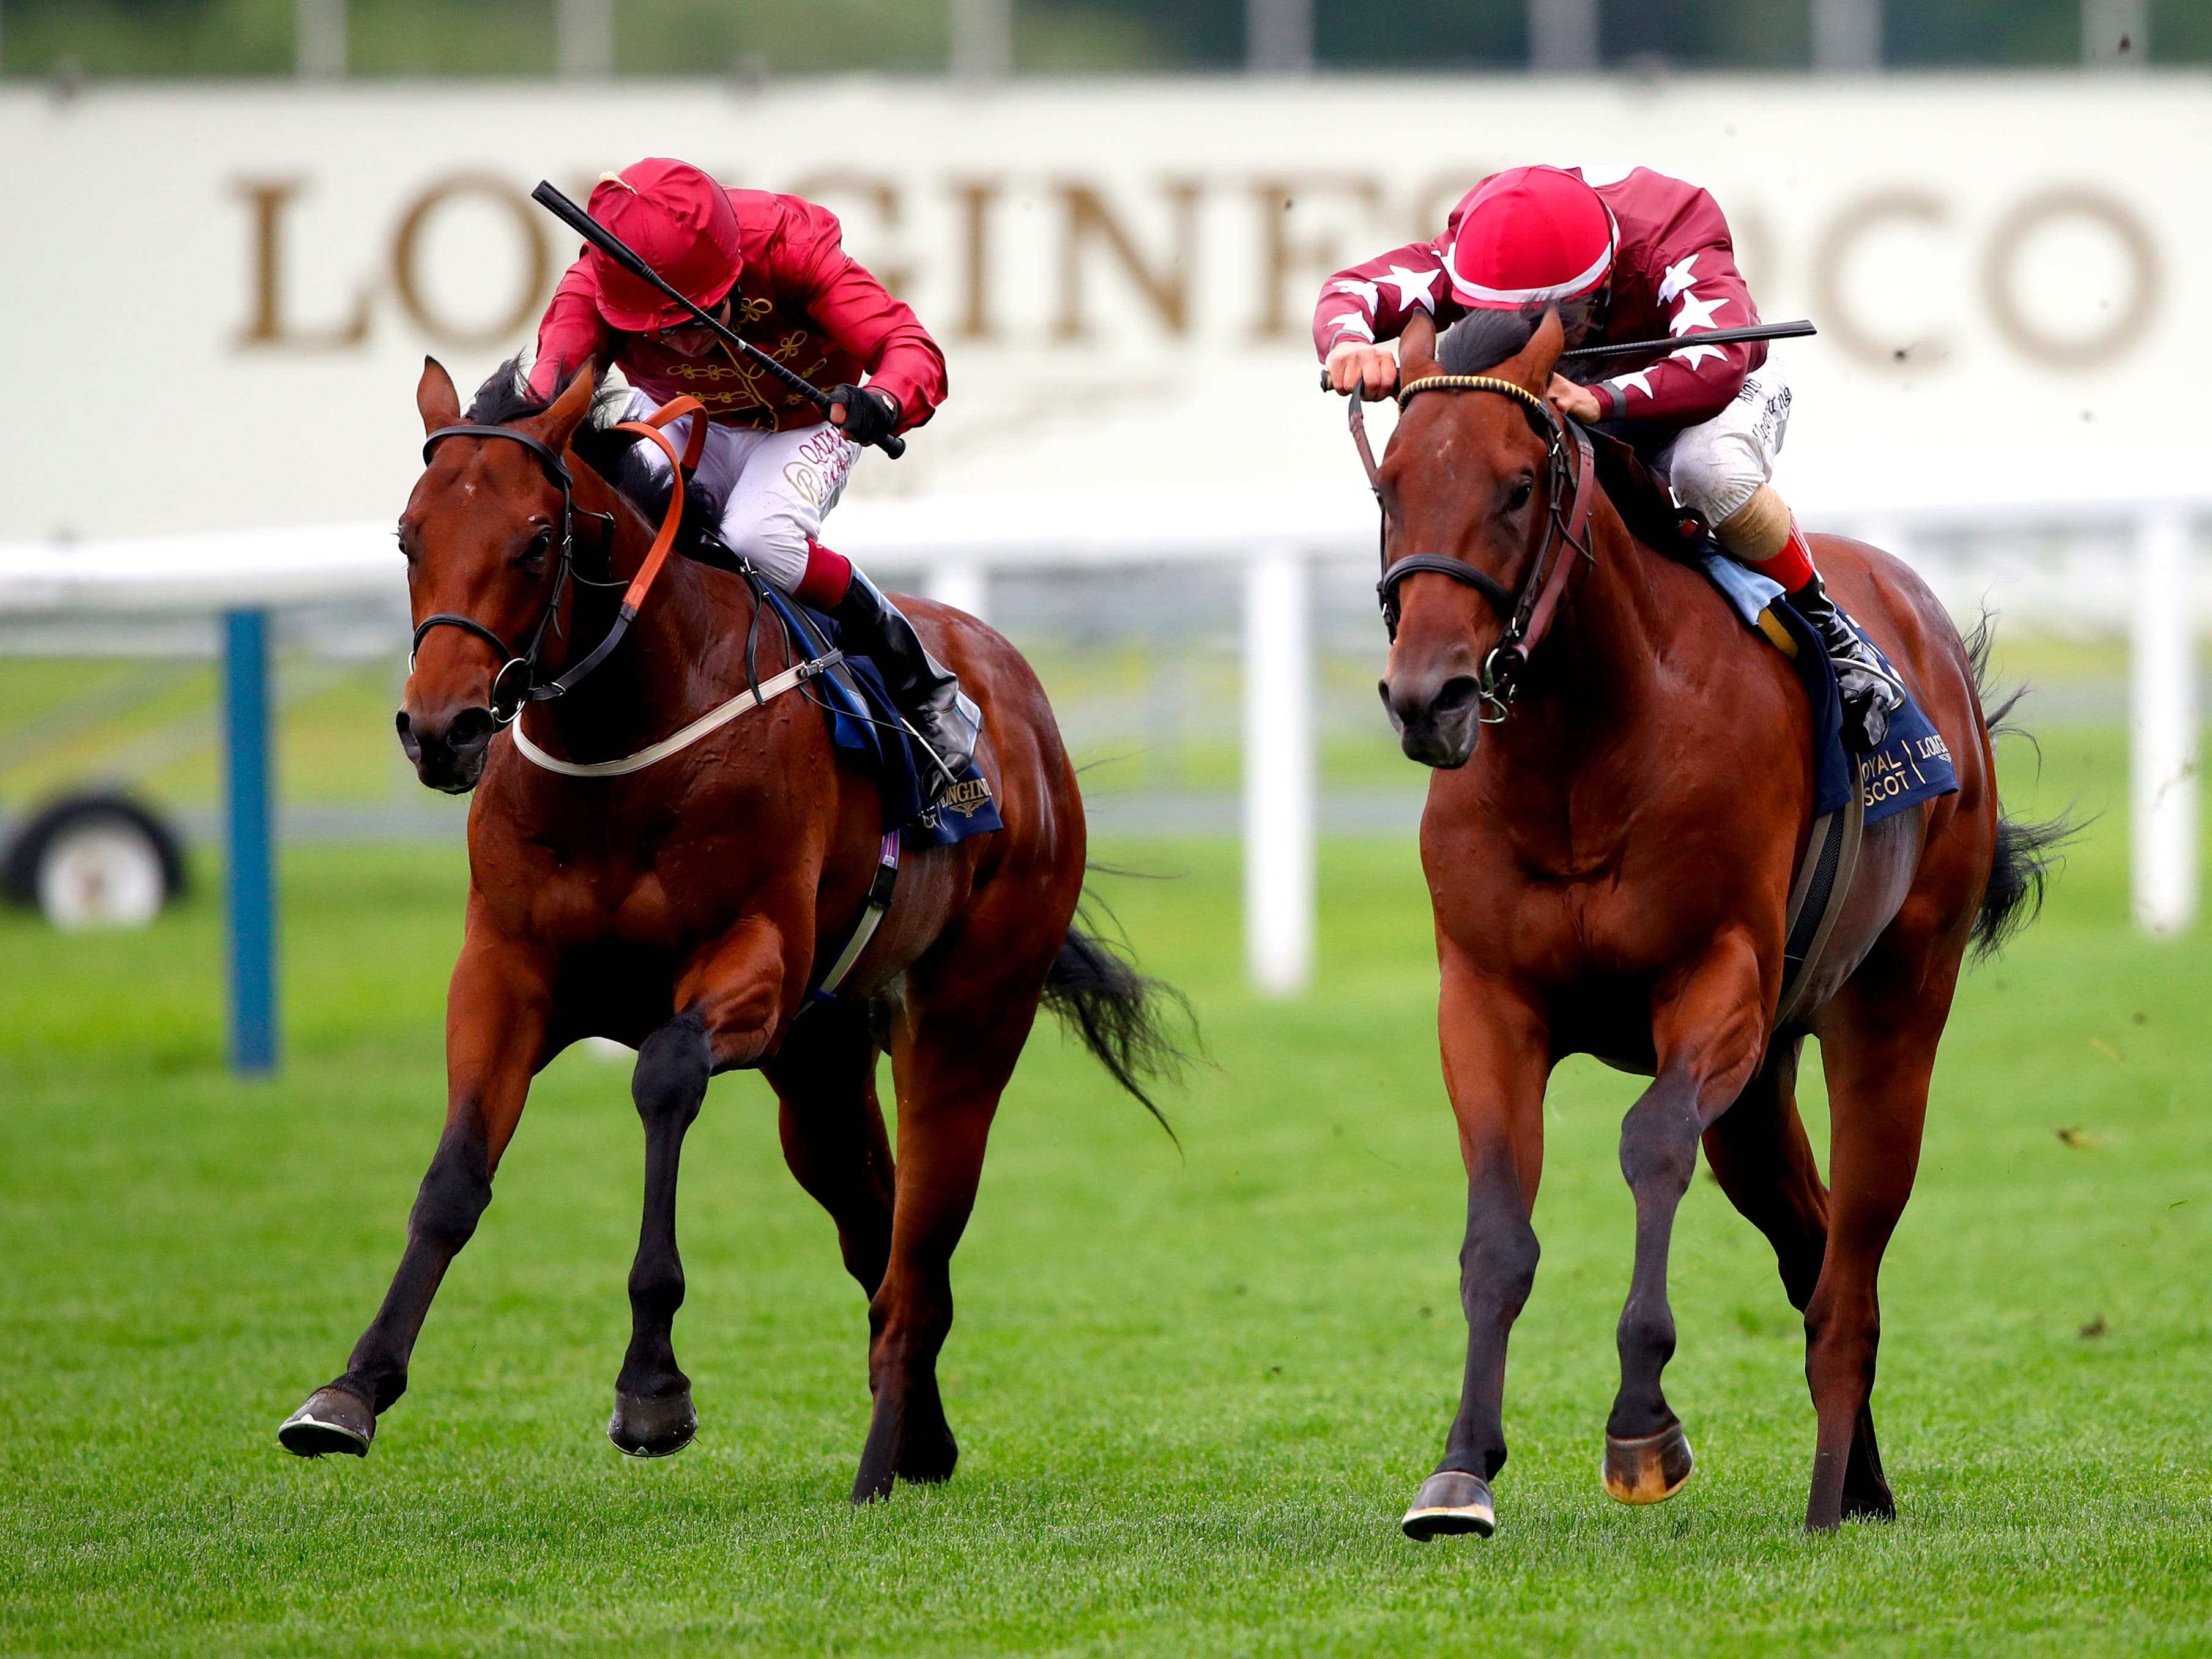 The Lir Jet (left) on his way to victory at Royal Ascot (Julian Finney/PA)